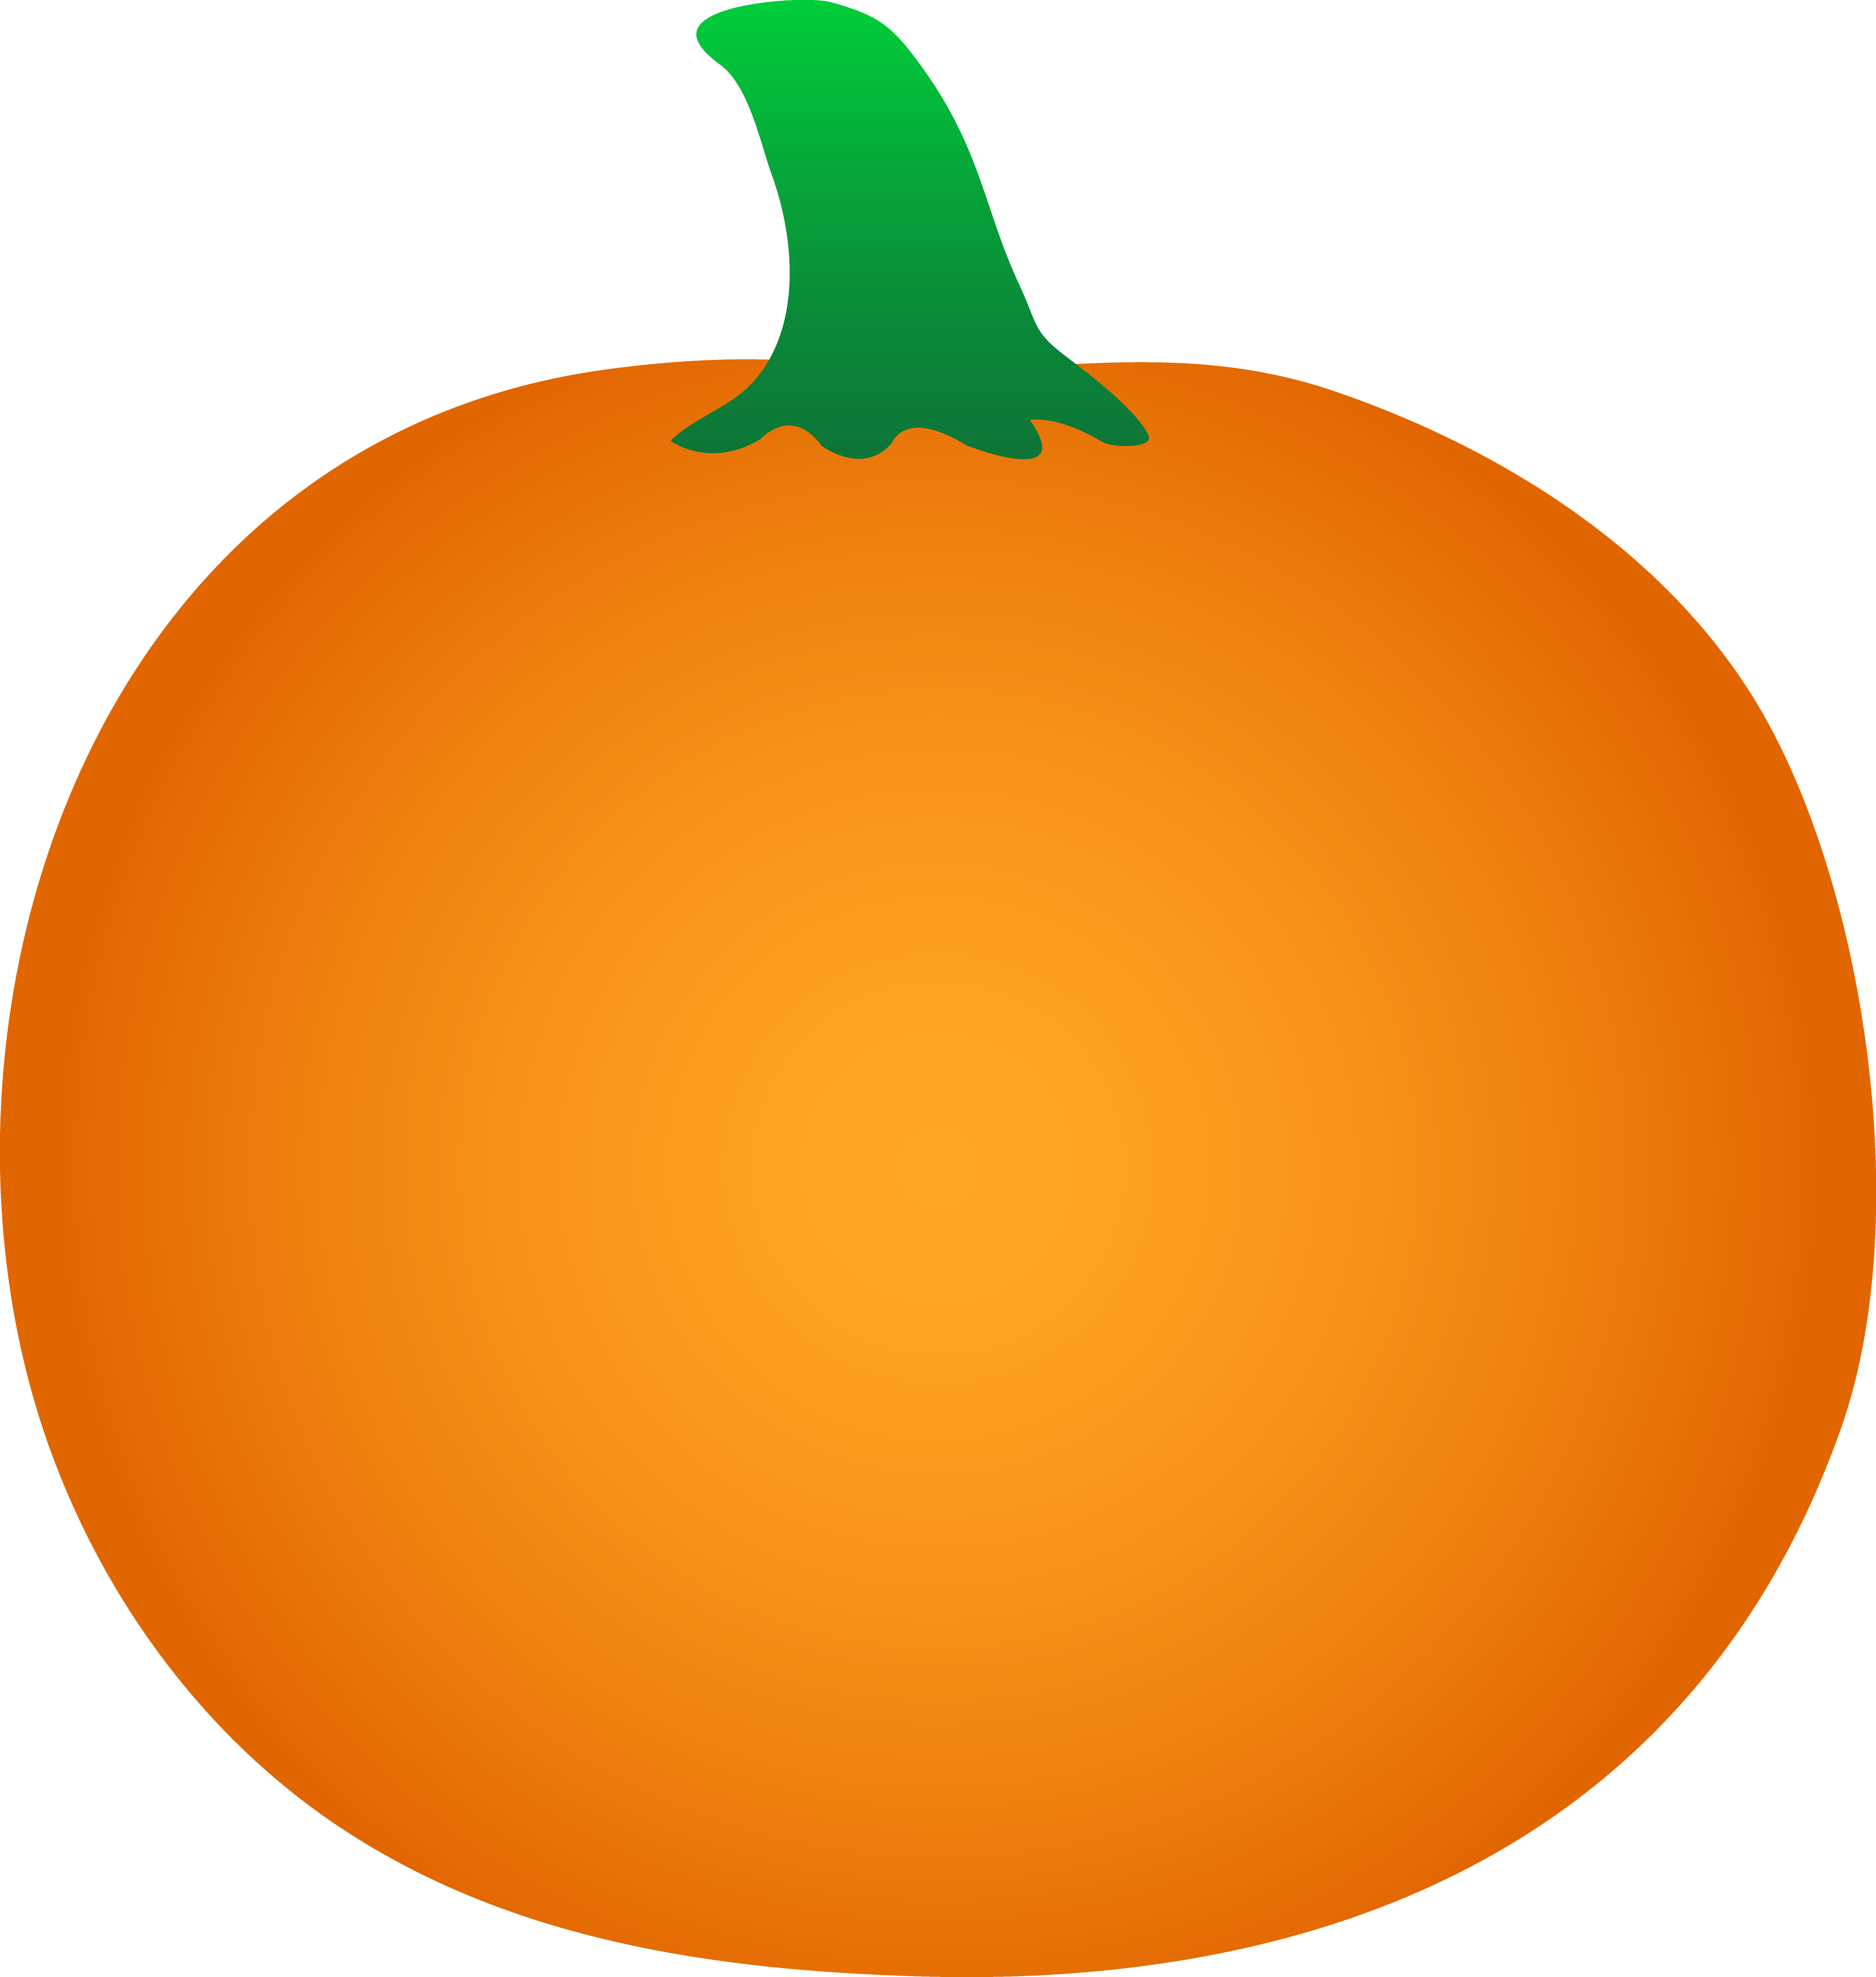 Round Orange Halloween Pumpkin - Free Cl-Round Orange Halloween Pumpkin - Free Clip Art-17